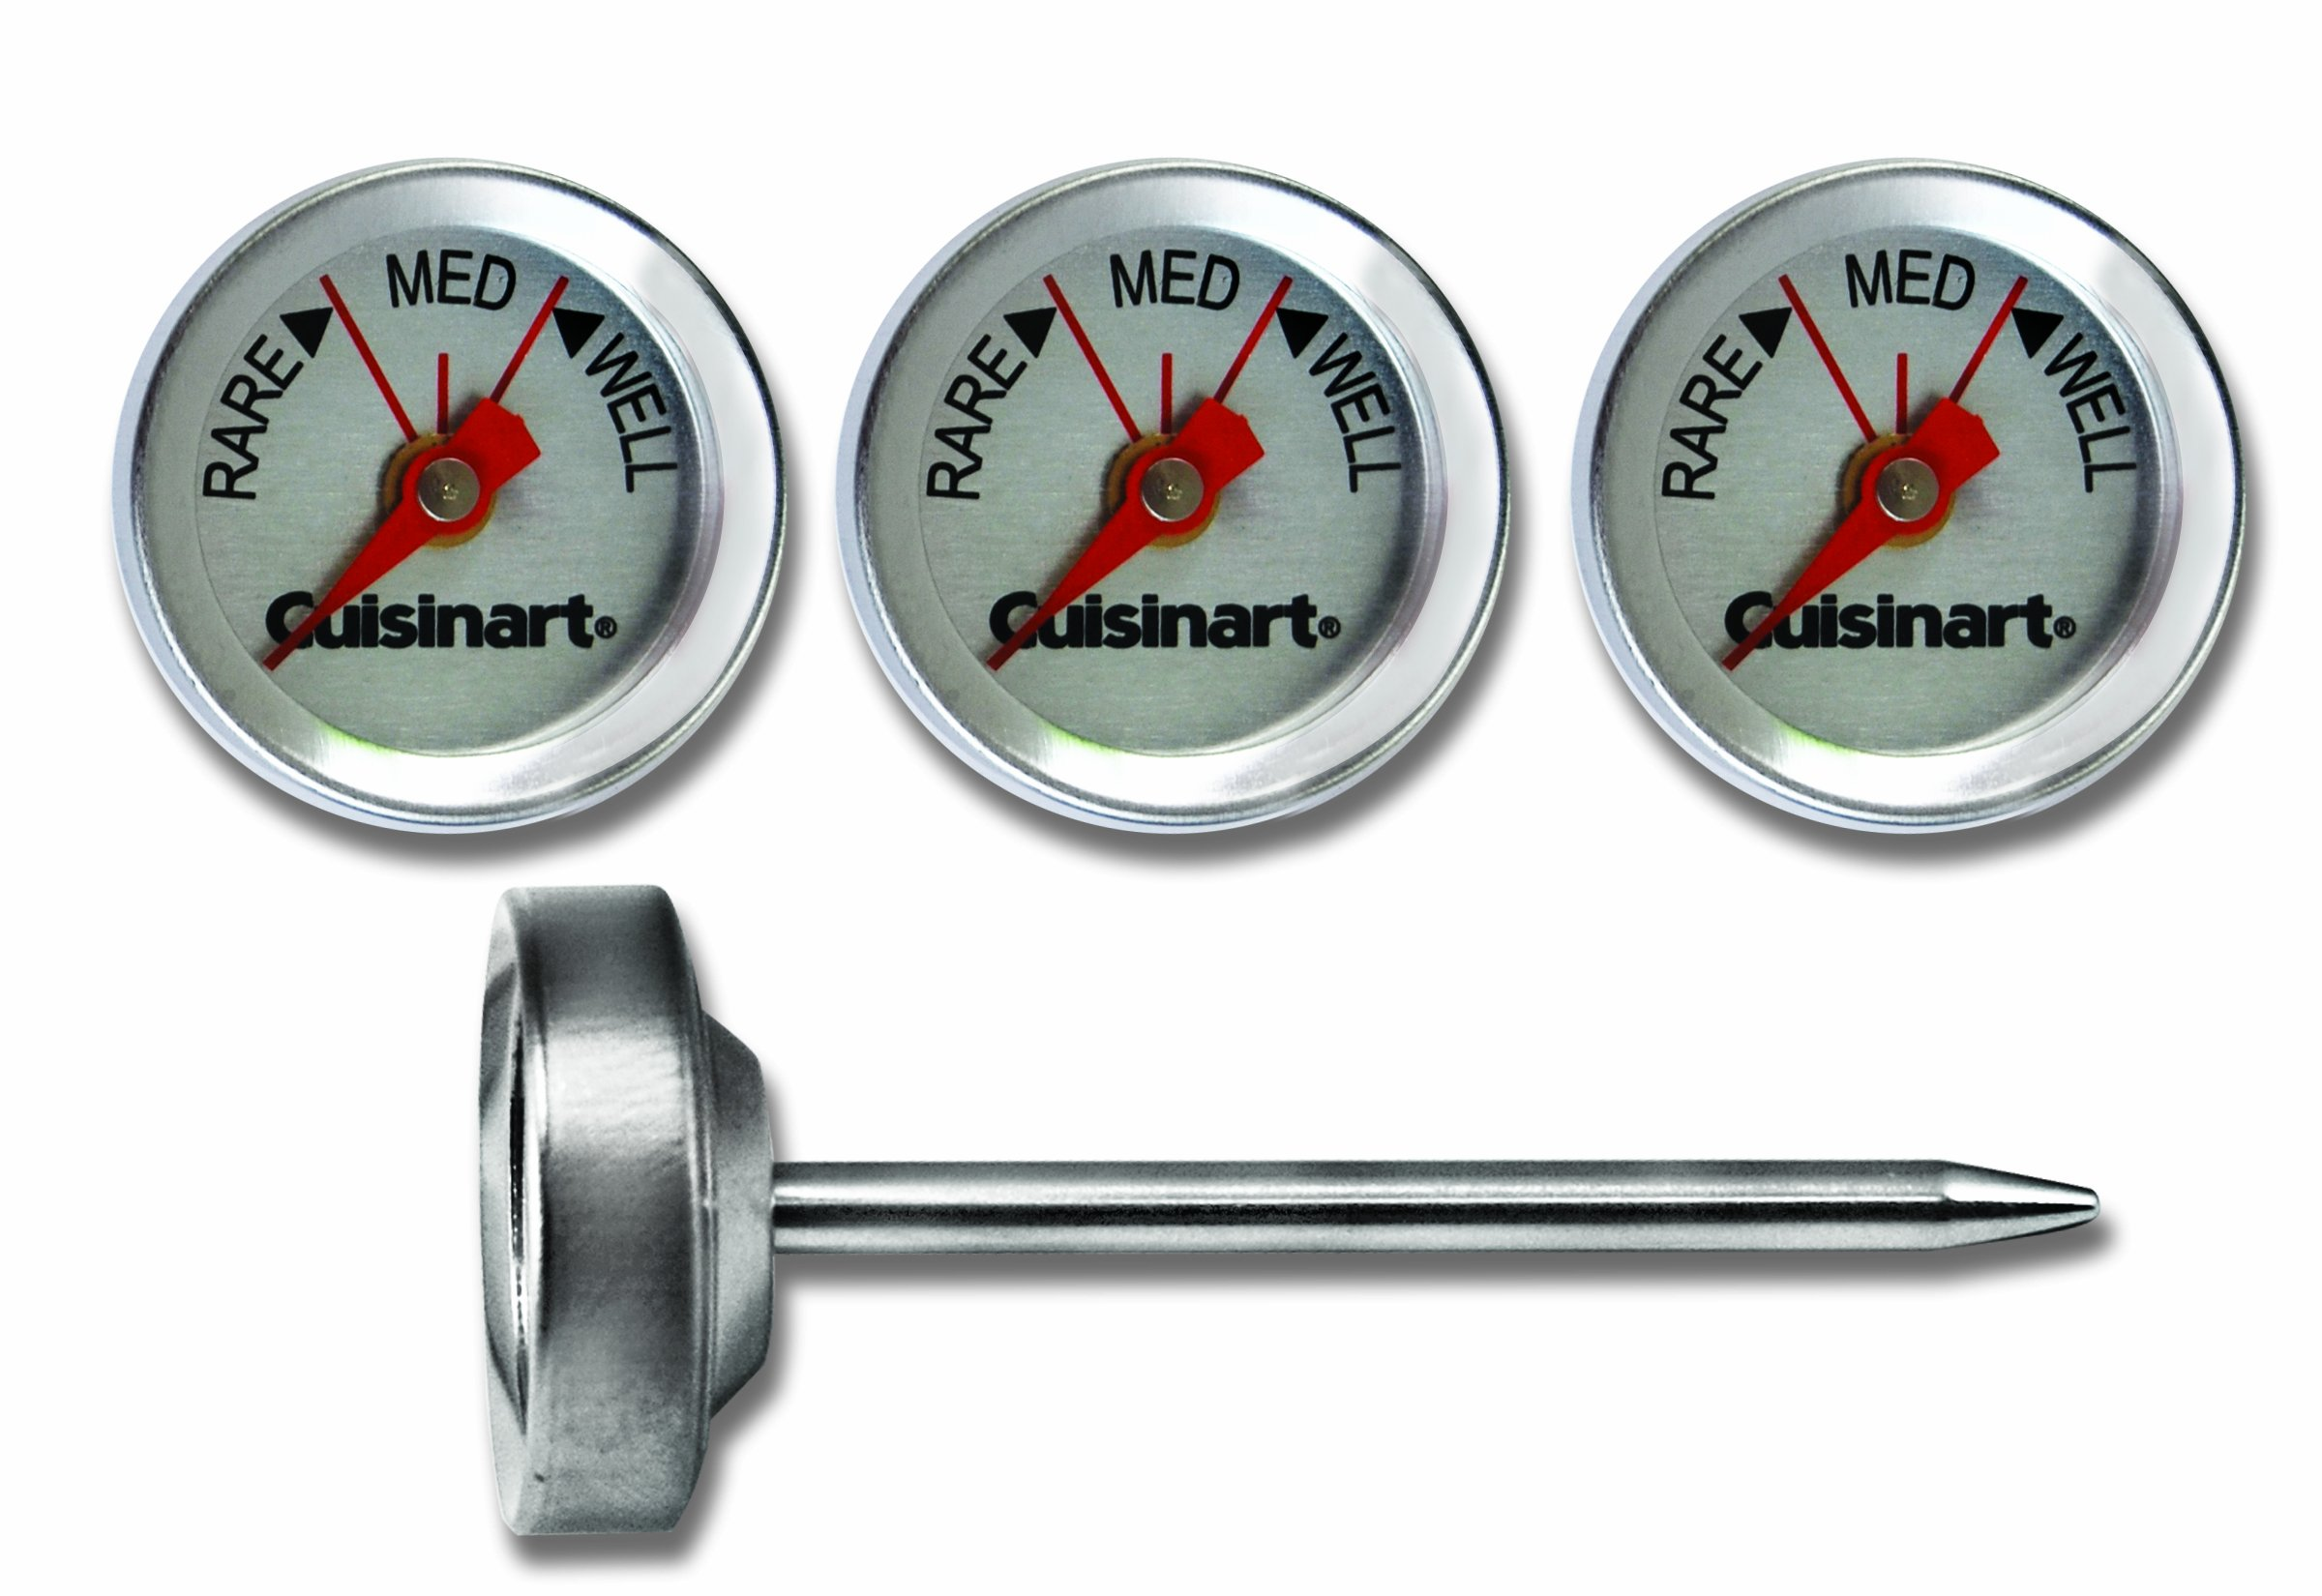 Cuisinart CSG-603  Outdoor Grilling Steak Thermometers (Set of 4) , Stainless Steel by Cuisinart (Image #1)